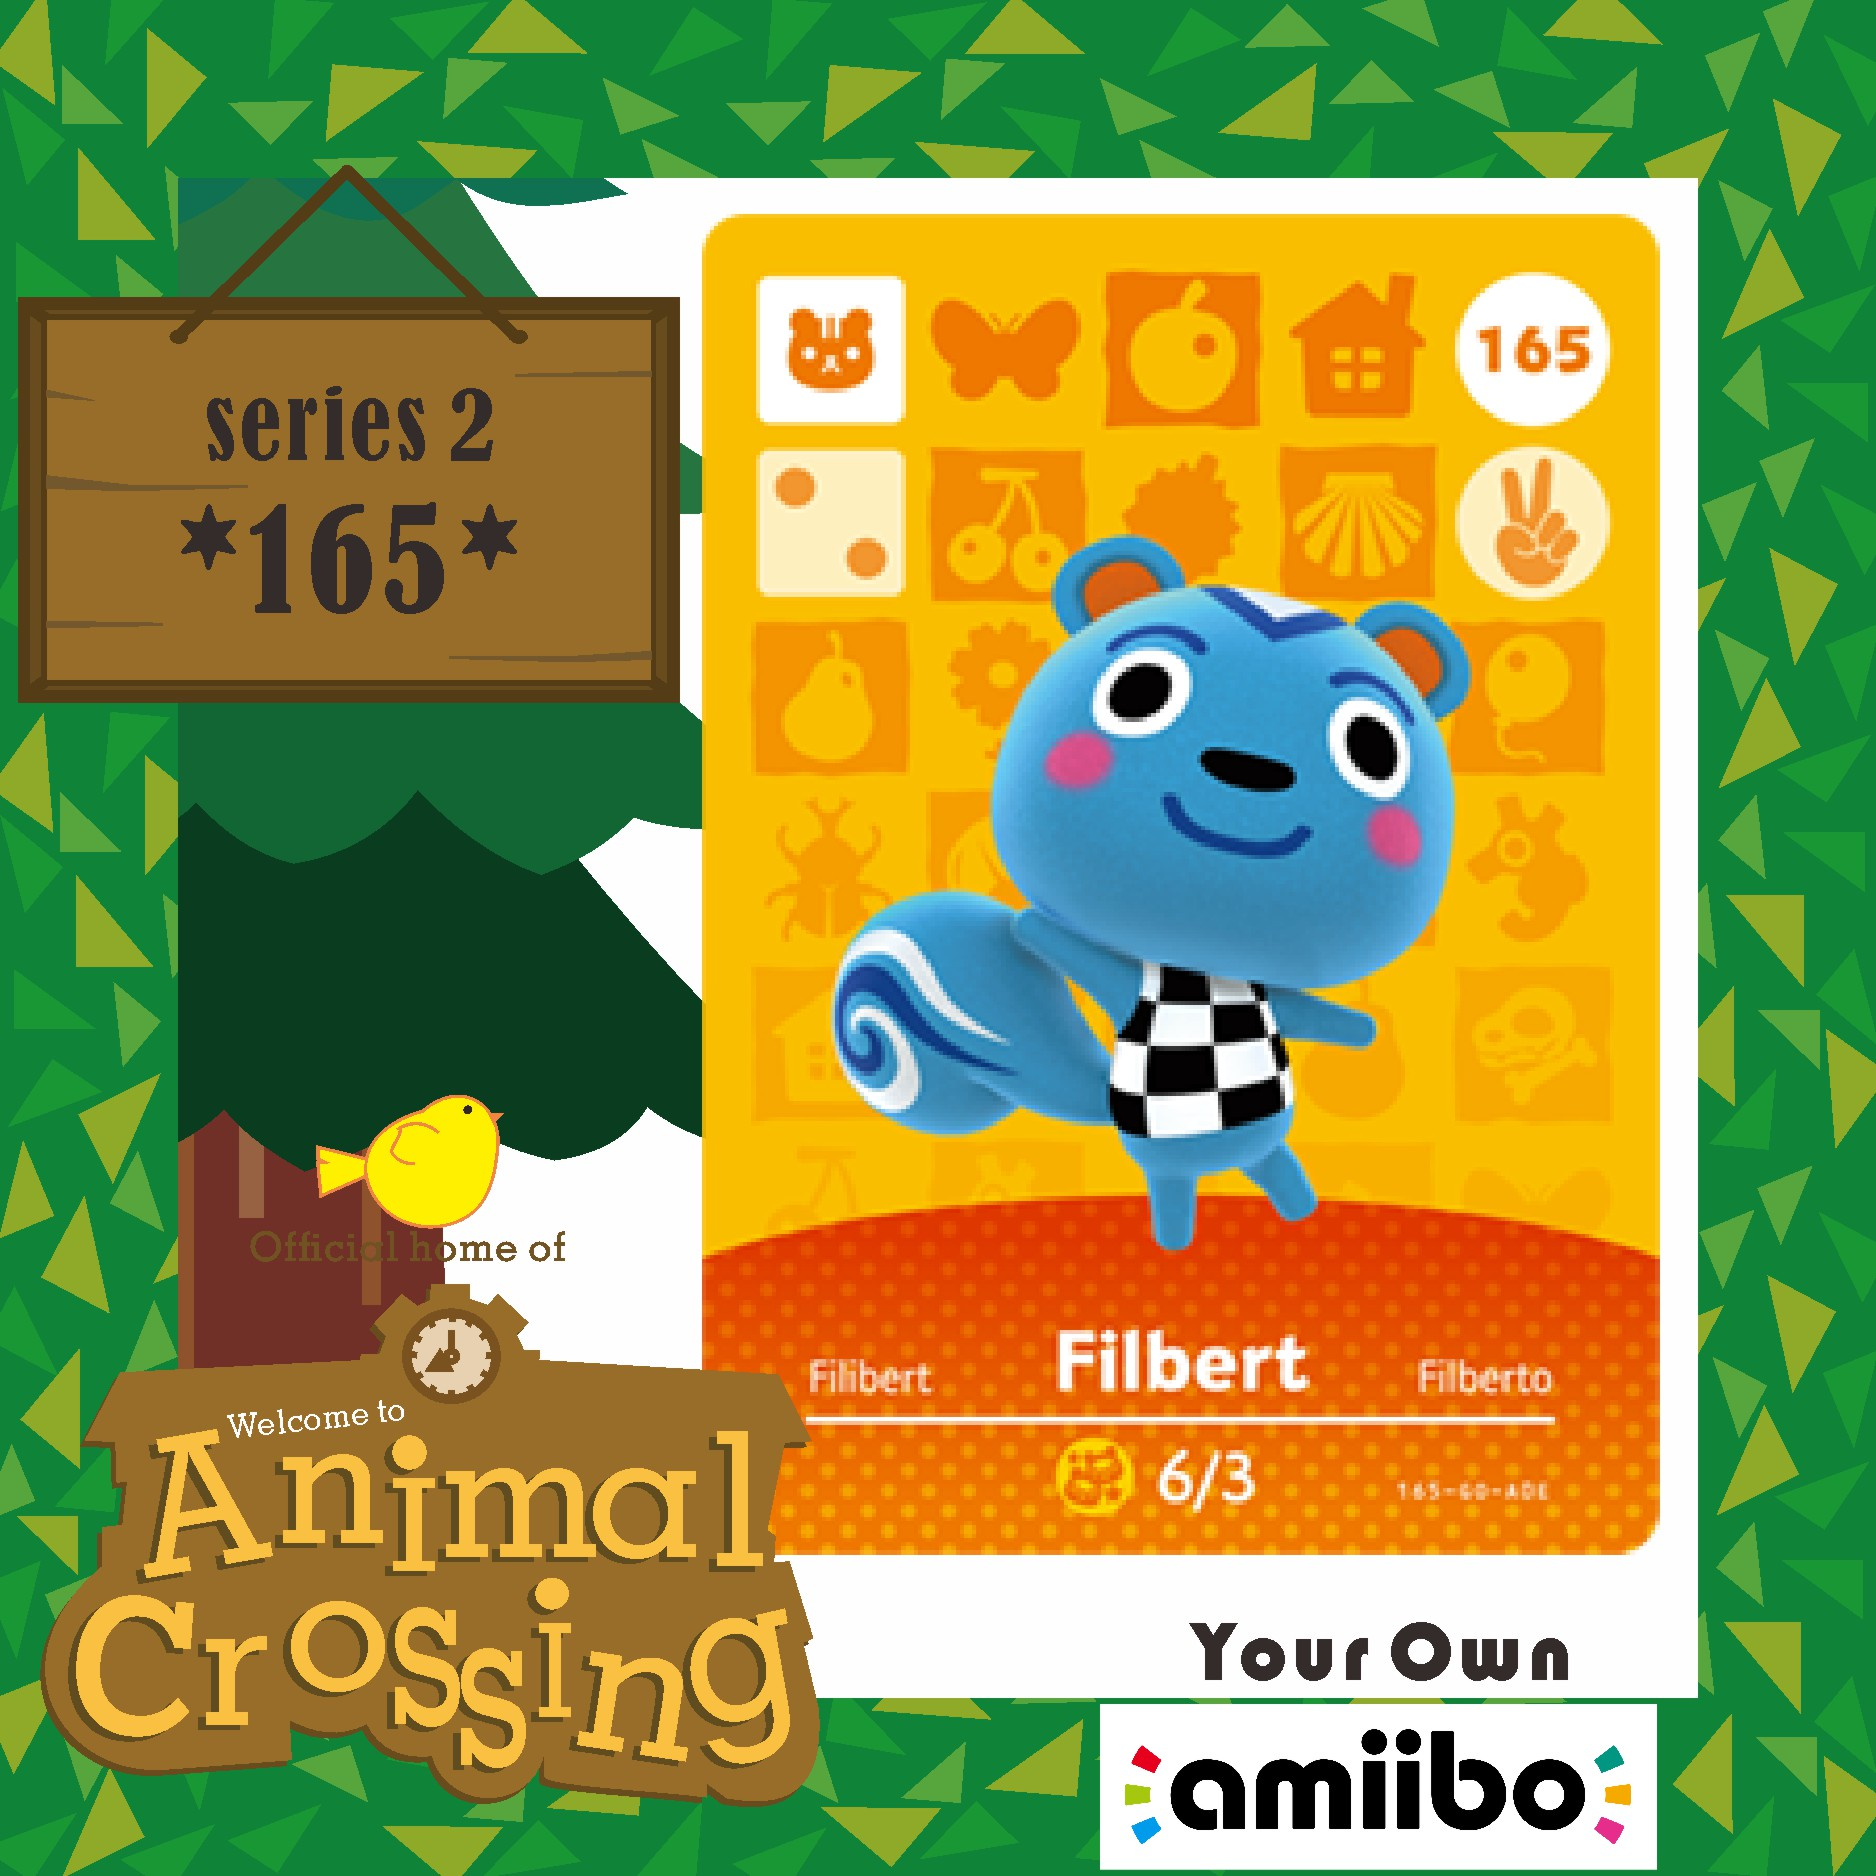 Animal Crossing Filbert Cross Card Amiibo Card Work for NS Games Amibo Switch Amiibo Cards Welcome New Horizons NFC Series 2 165 1